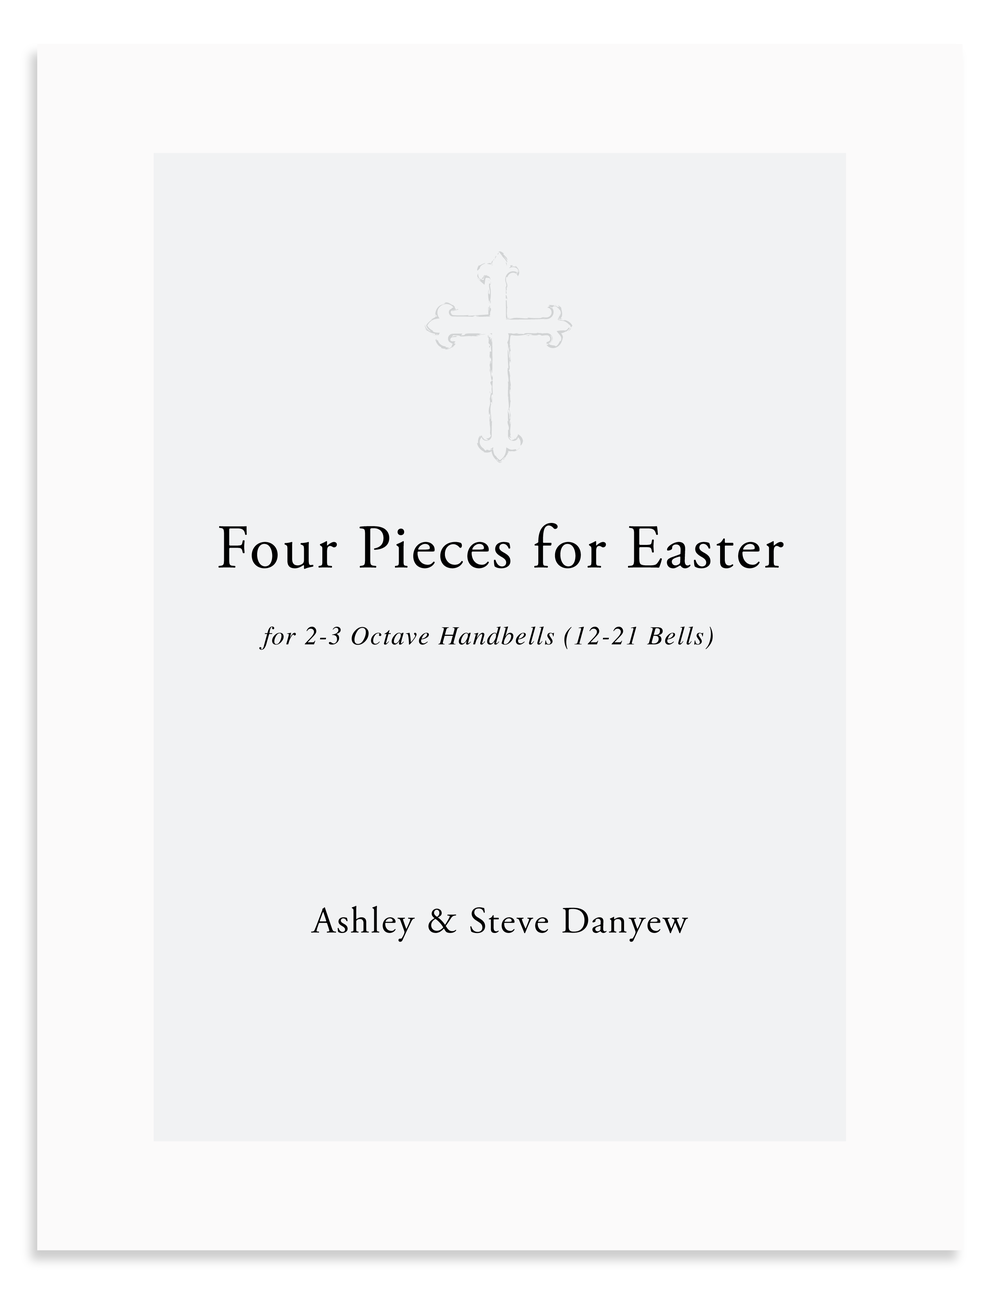 Four Pieces for Easter for 2-3 octave handbells (12-21 bells)